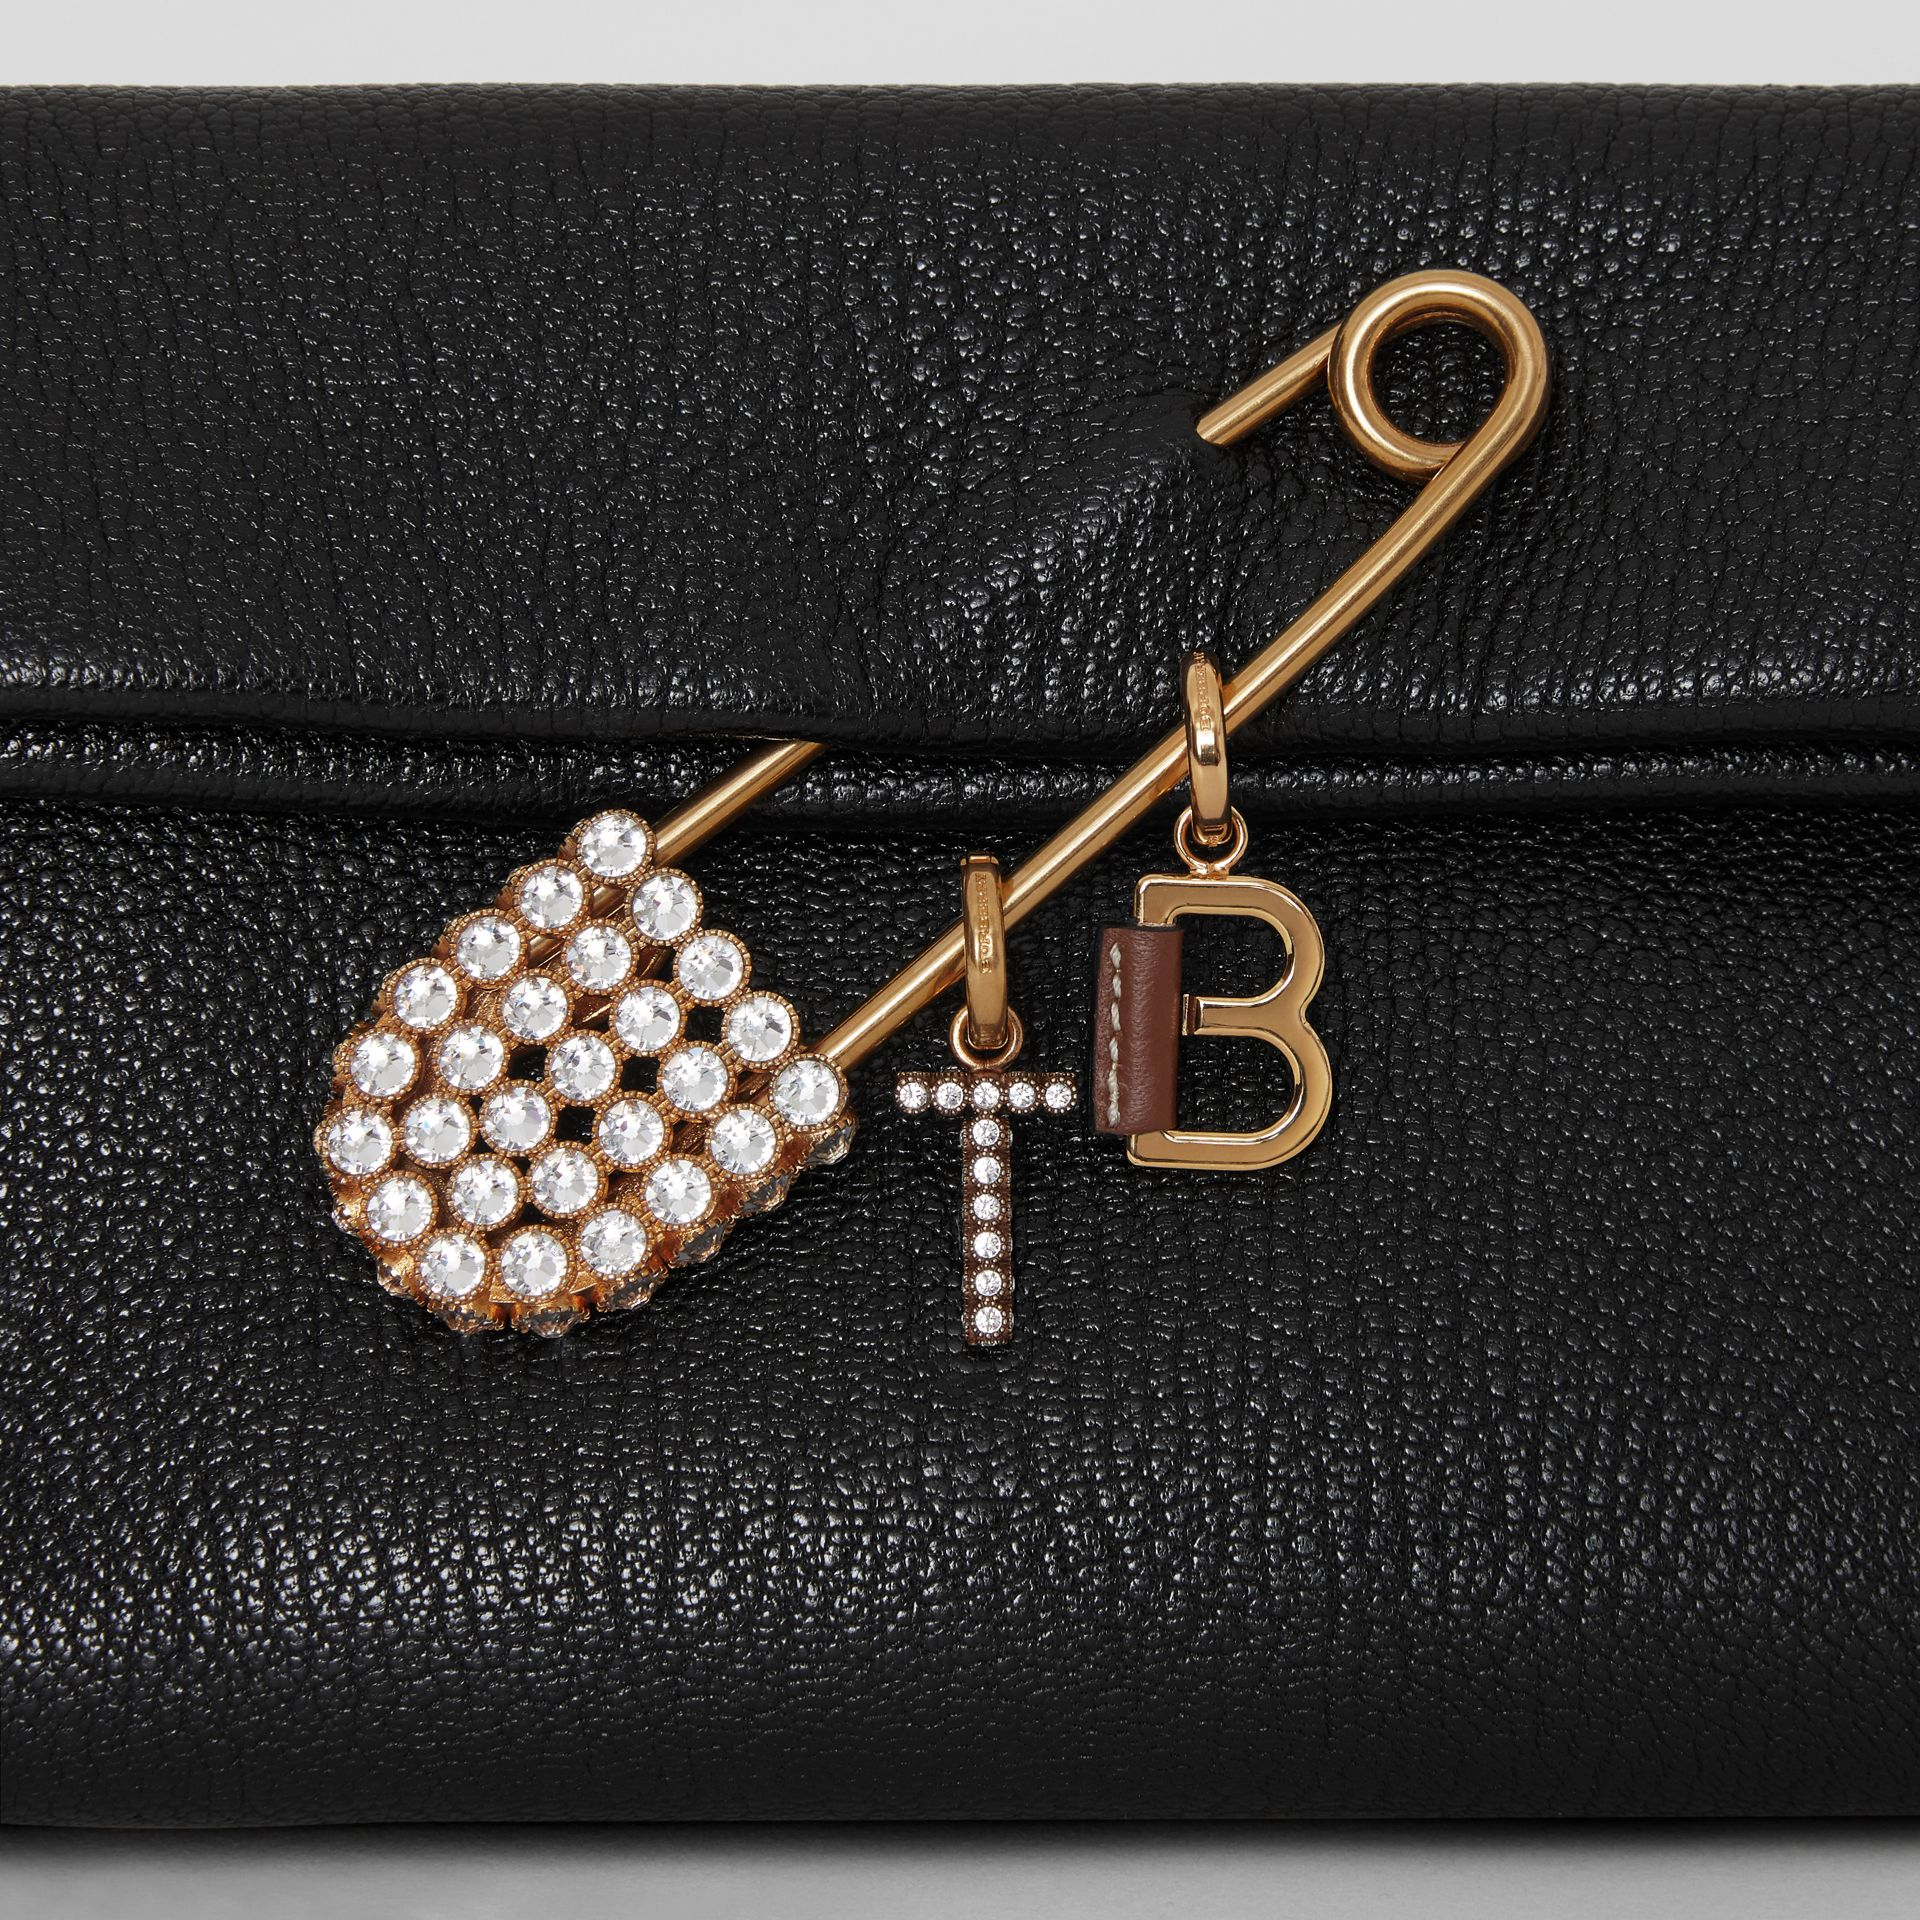 Leather-topstitched 'A' Alphabet Charm in Palladio/grey - Women | Burberry Singapore - gallery image 2